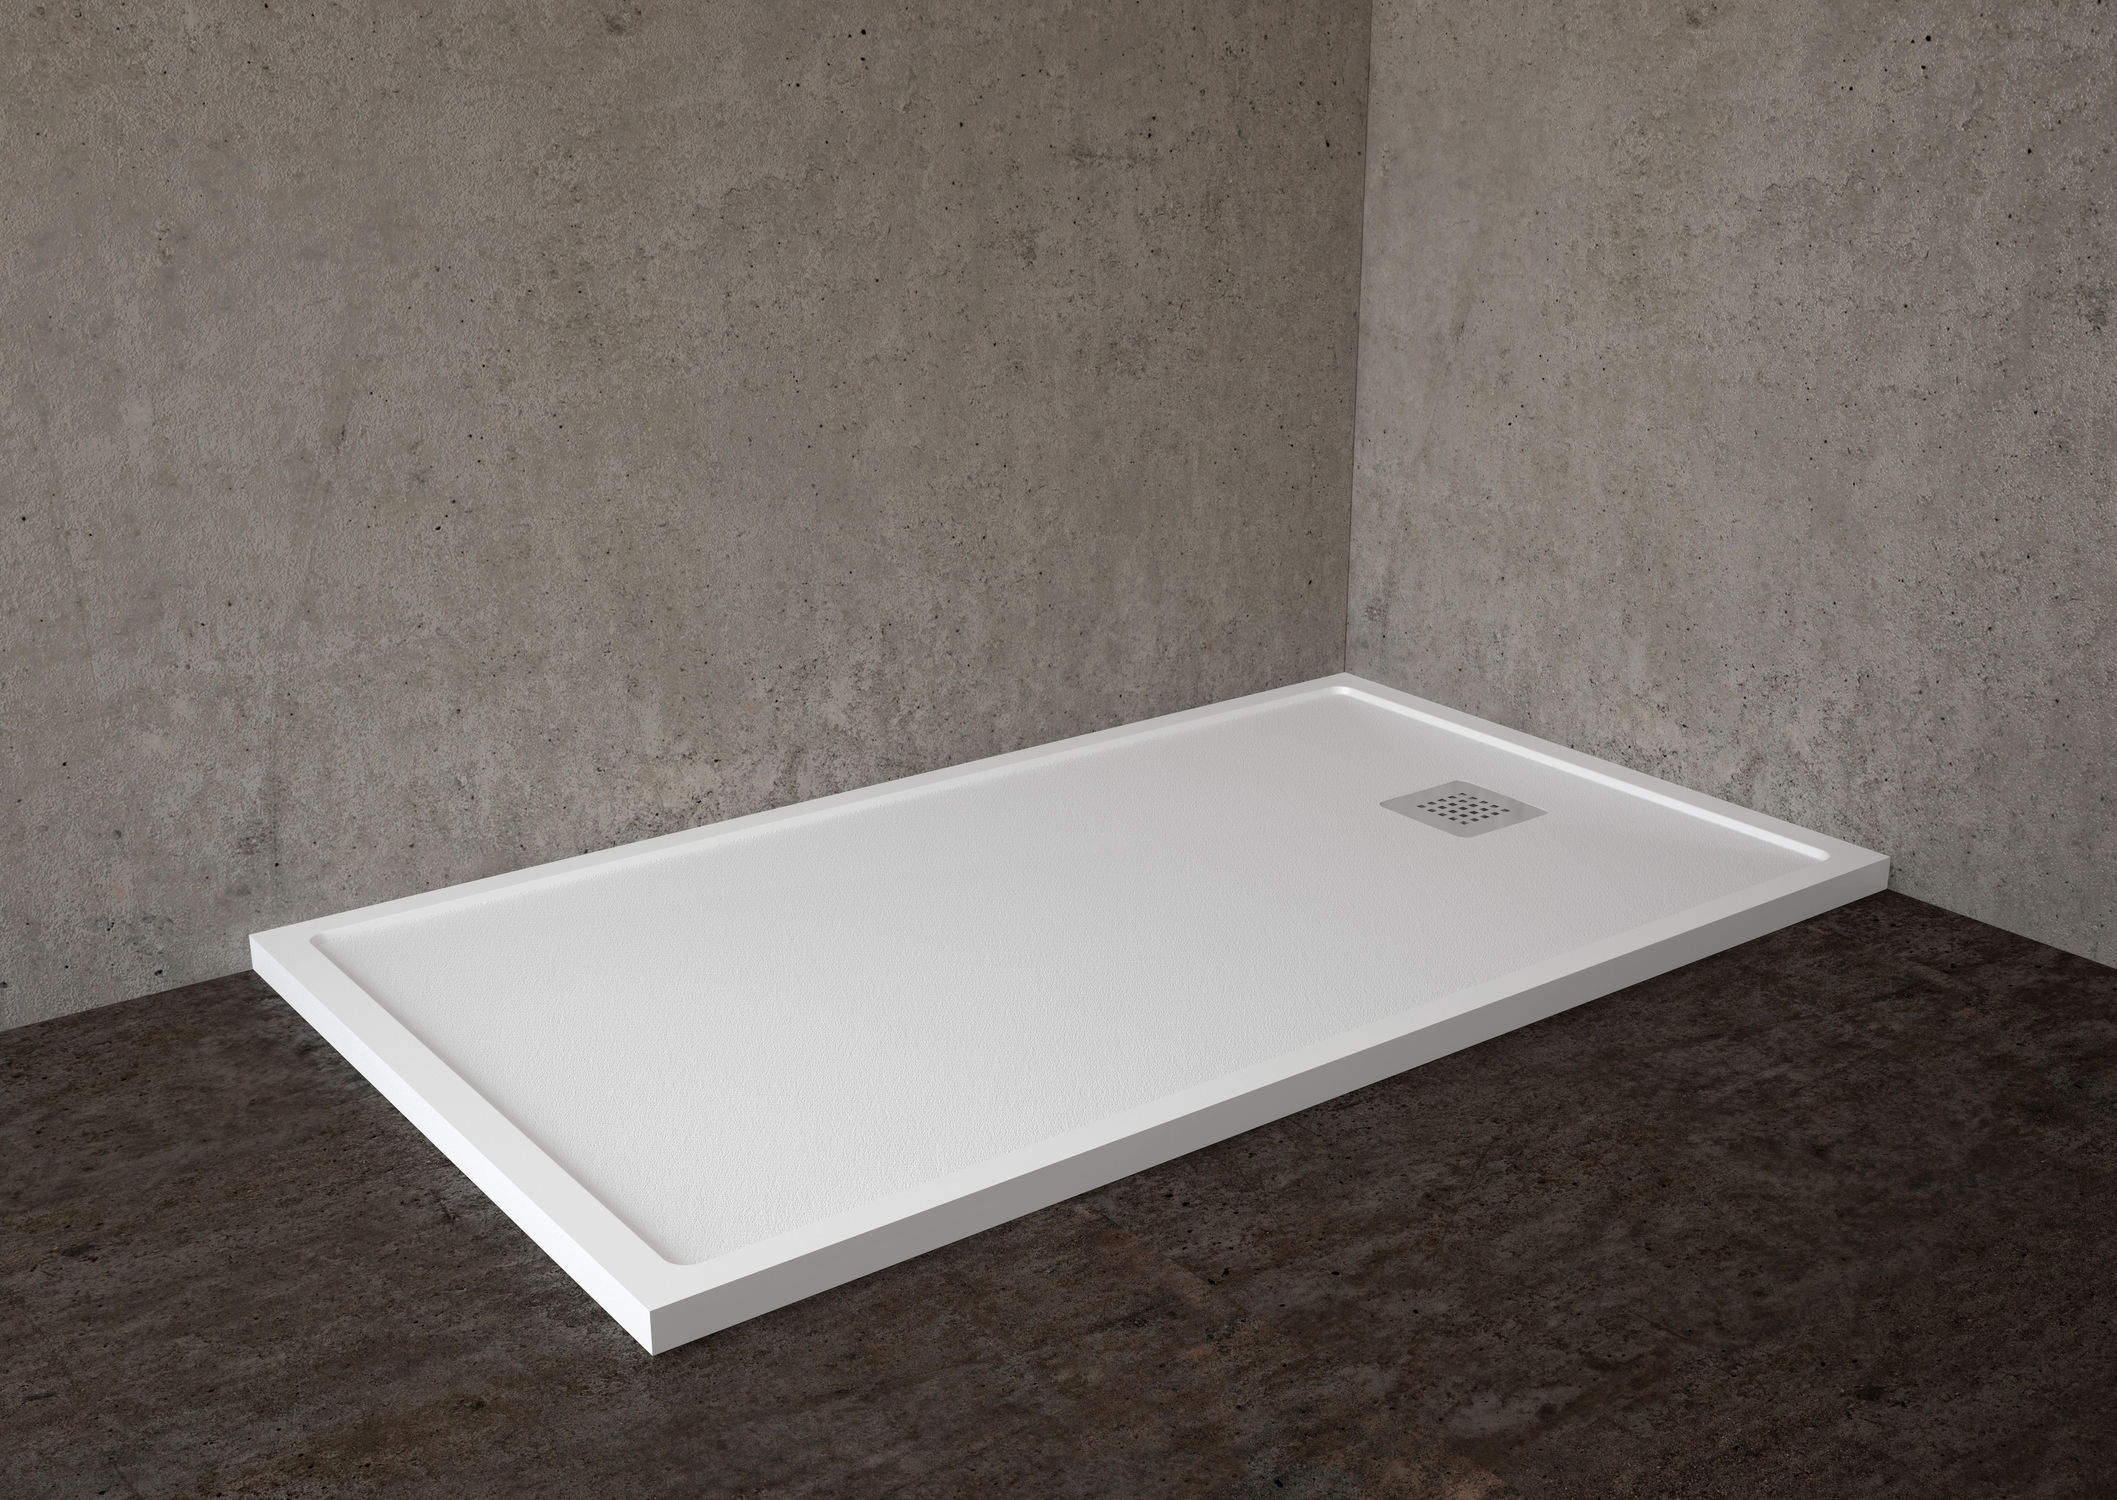 Diy Solid Surface Shower Pan Madison Art Center Design